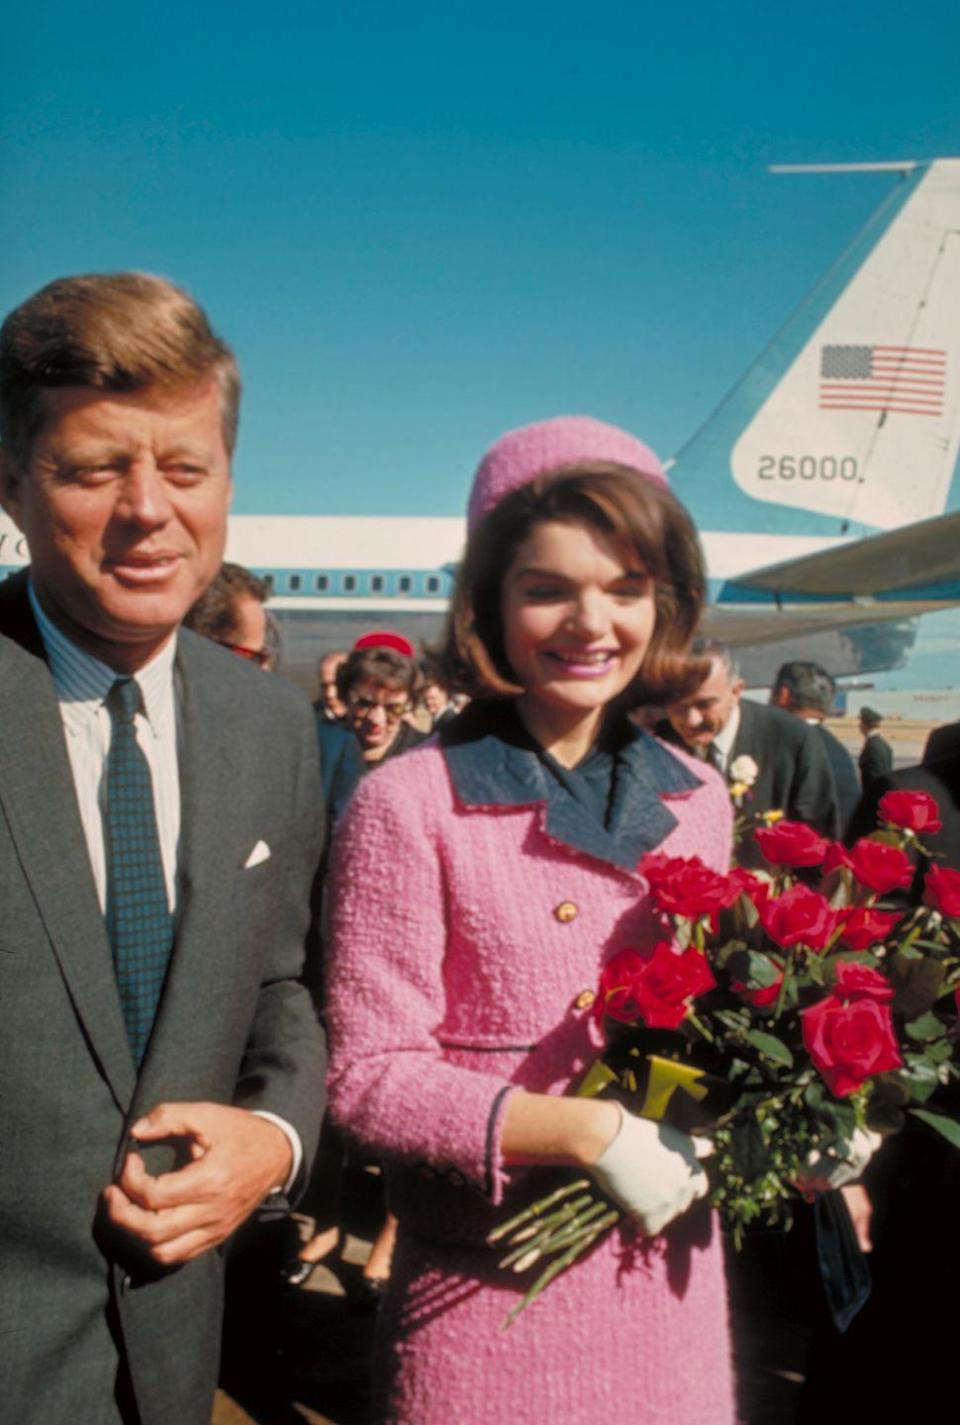 """<p>Jackie was sitting next to JFK wearing her iconic pink <a href=""""http://www.history.com/news/10-things-you-may-not-know-about-jacqueline-kennedy-onassis"""" rel=""""nofollow noopener"""" target=""""_blank"""" data-ylk=""""slk:suit"""" class=""""link rapid-noclick-resp"""">suit</a> when he was assassinated in 1963. She refused to change out of the suit even when Johnson was sworn in as president. Lady Bird Johnson asked if she would like to change, to which Jackie responded, """"Oh no, I want them to see what they've done to Jack."""" The suit is now in the National Archives, but the famous pink hat she wore on the day has not been found. </p>"""